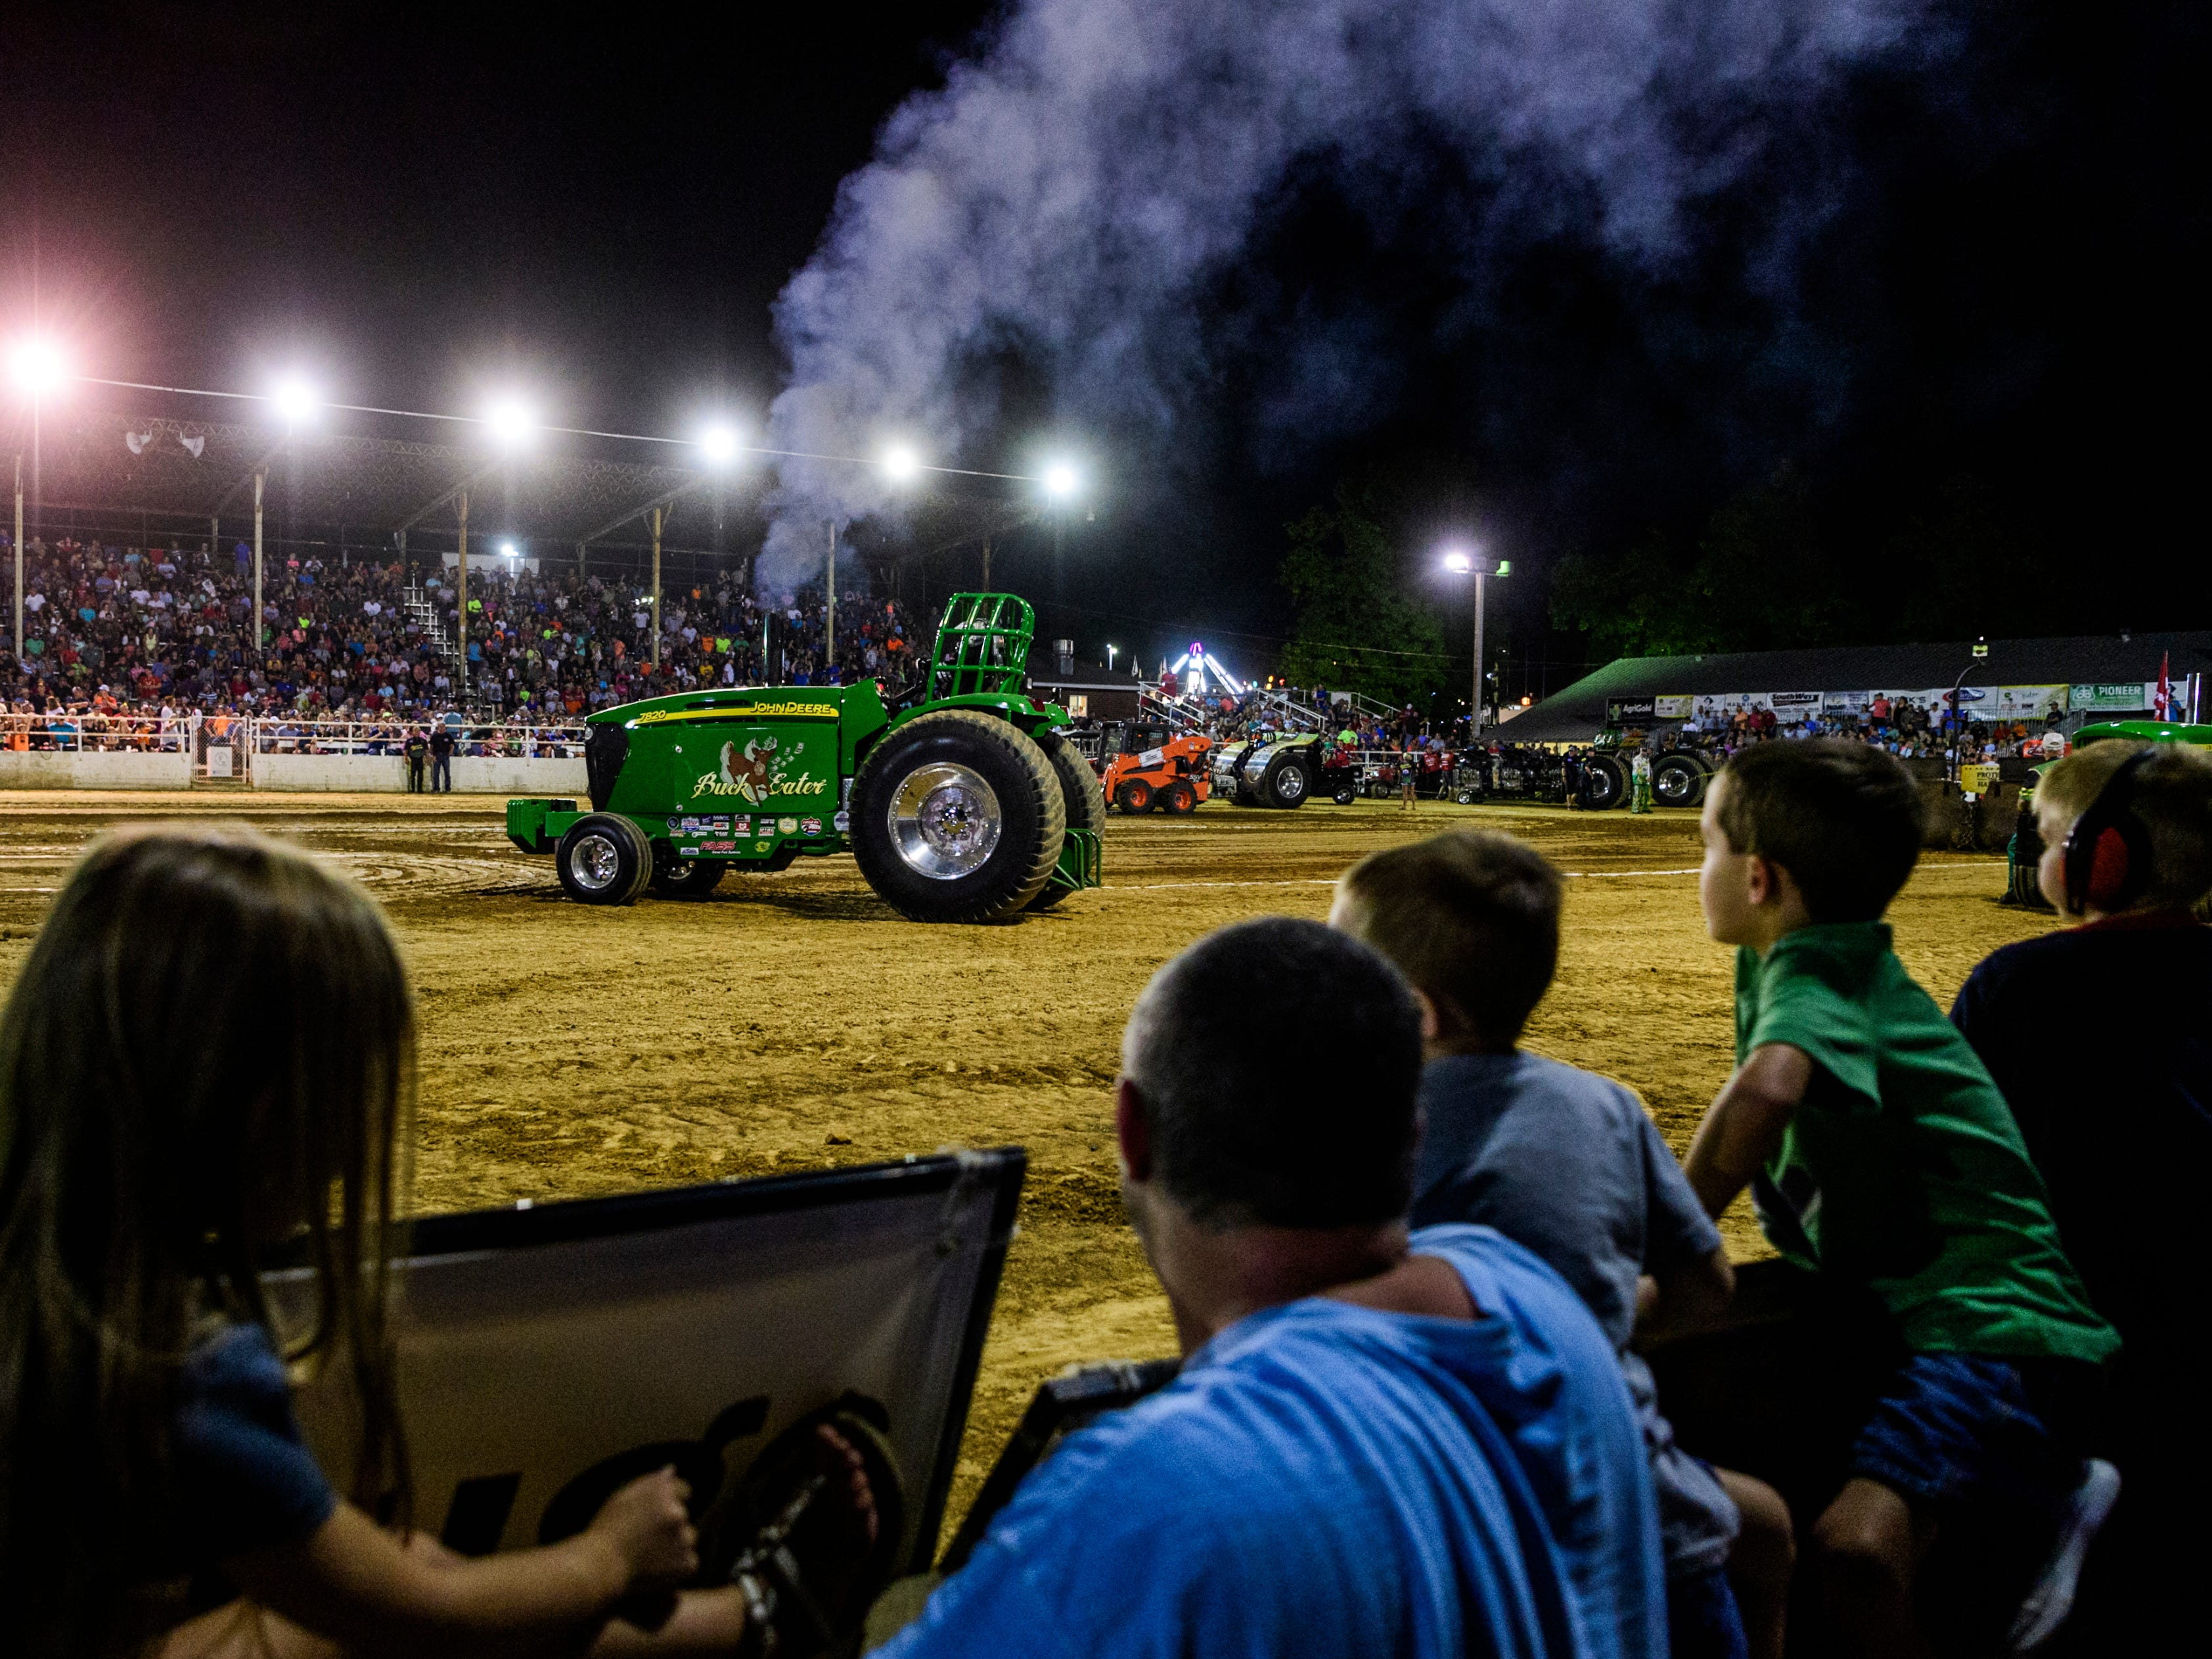 The grandstands are bursting at the seams with people of all ages watching the Lucas Oil Pro Pulling League Professional Tractor Pull event at the Vanderburgh County Fair grandstand, Friday evening, July 27, 2018.